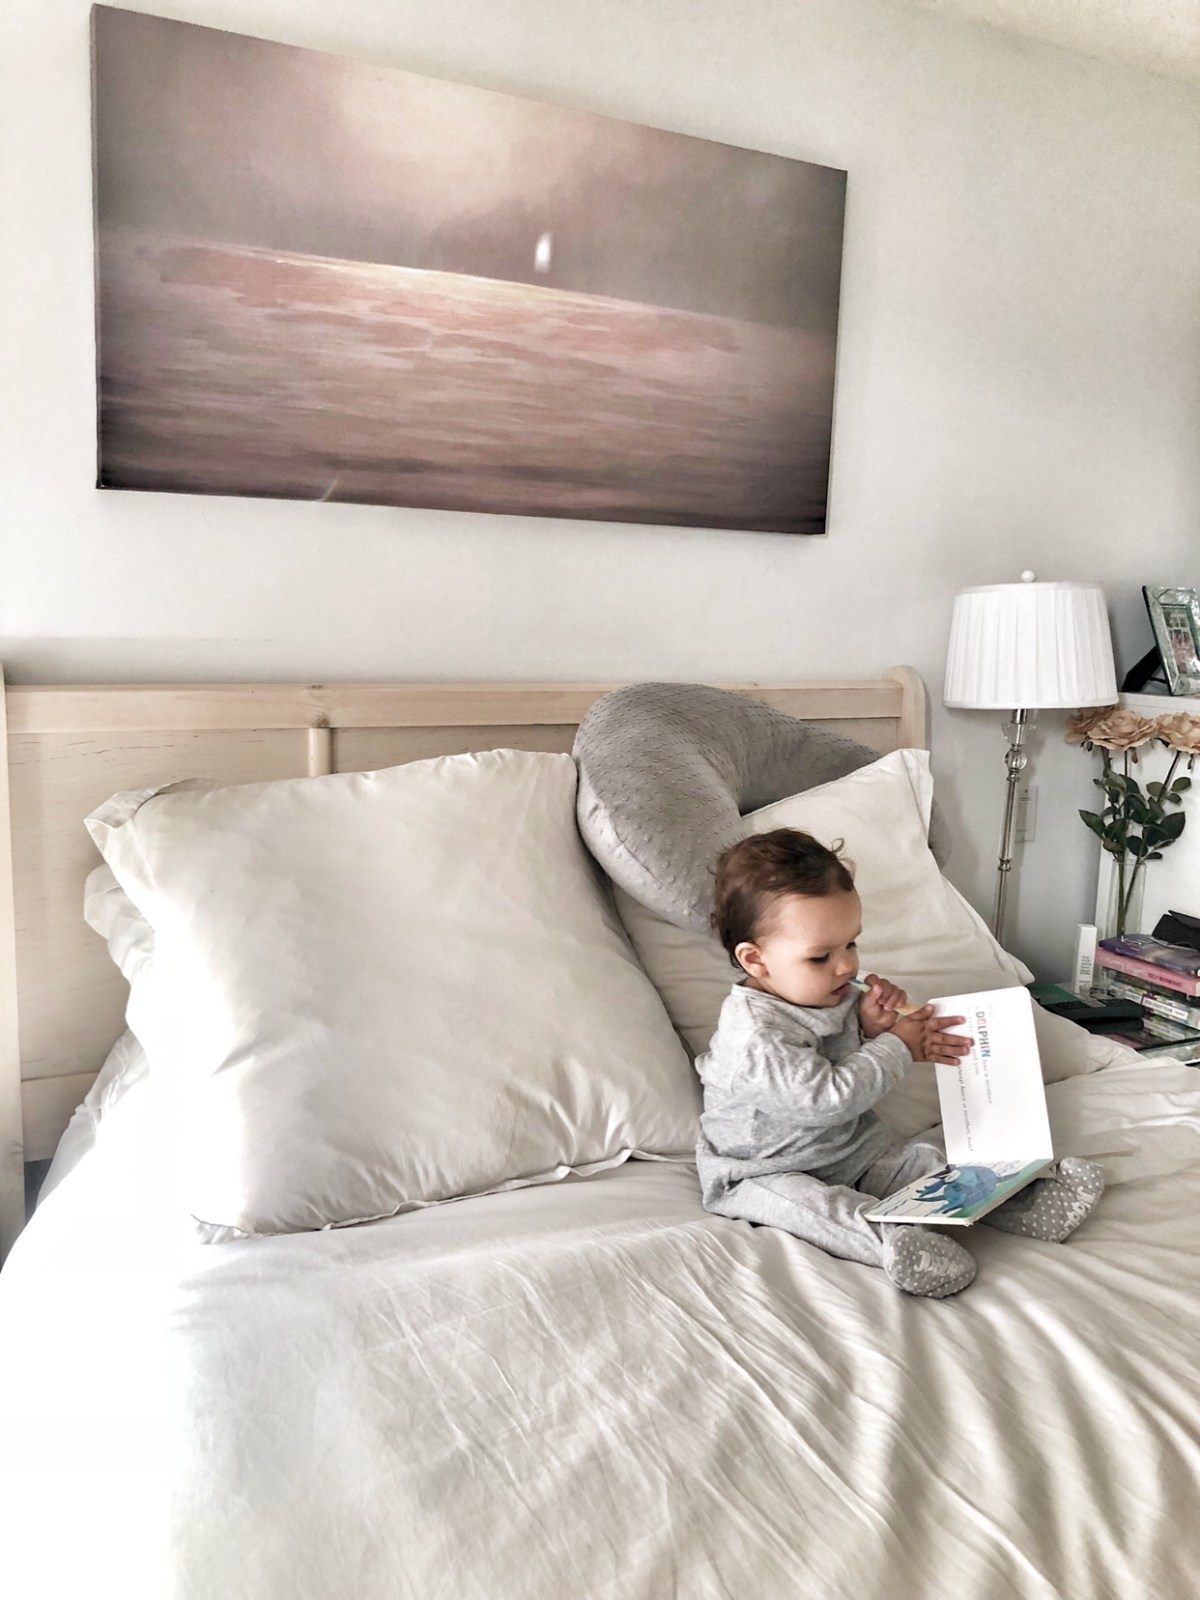 forming good bedtime habits early